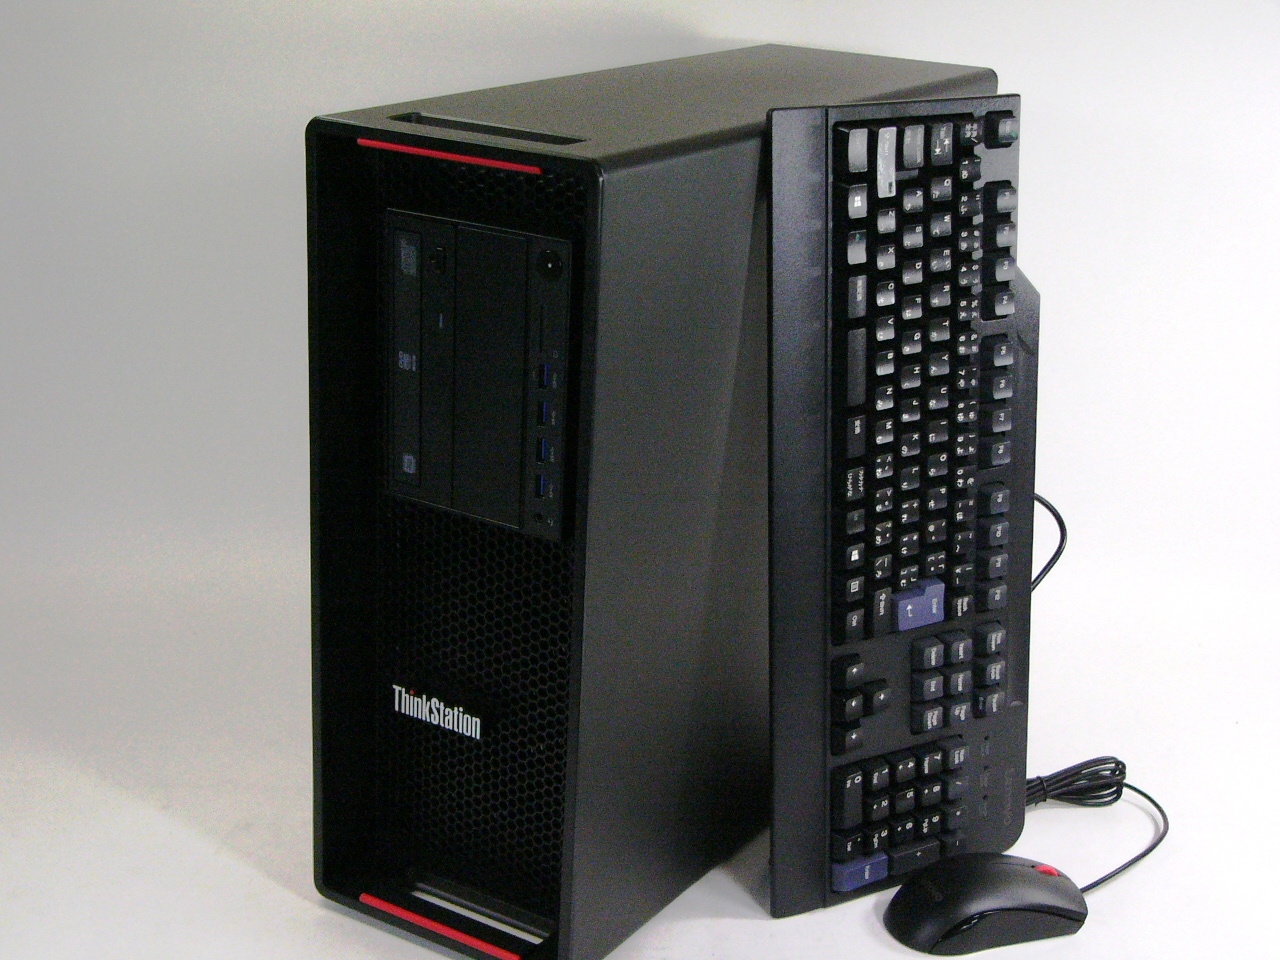 【再生品】ThinkStation P510 /Win 10 Pro /Xeon E5-1620 /256GB 32GB K2200